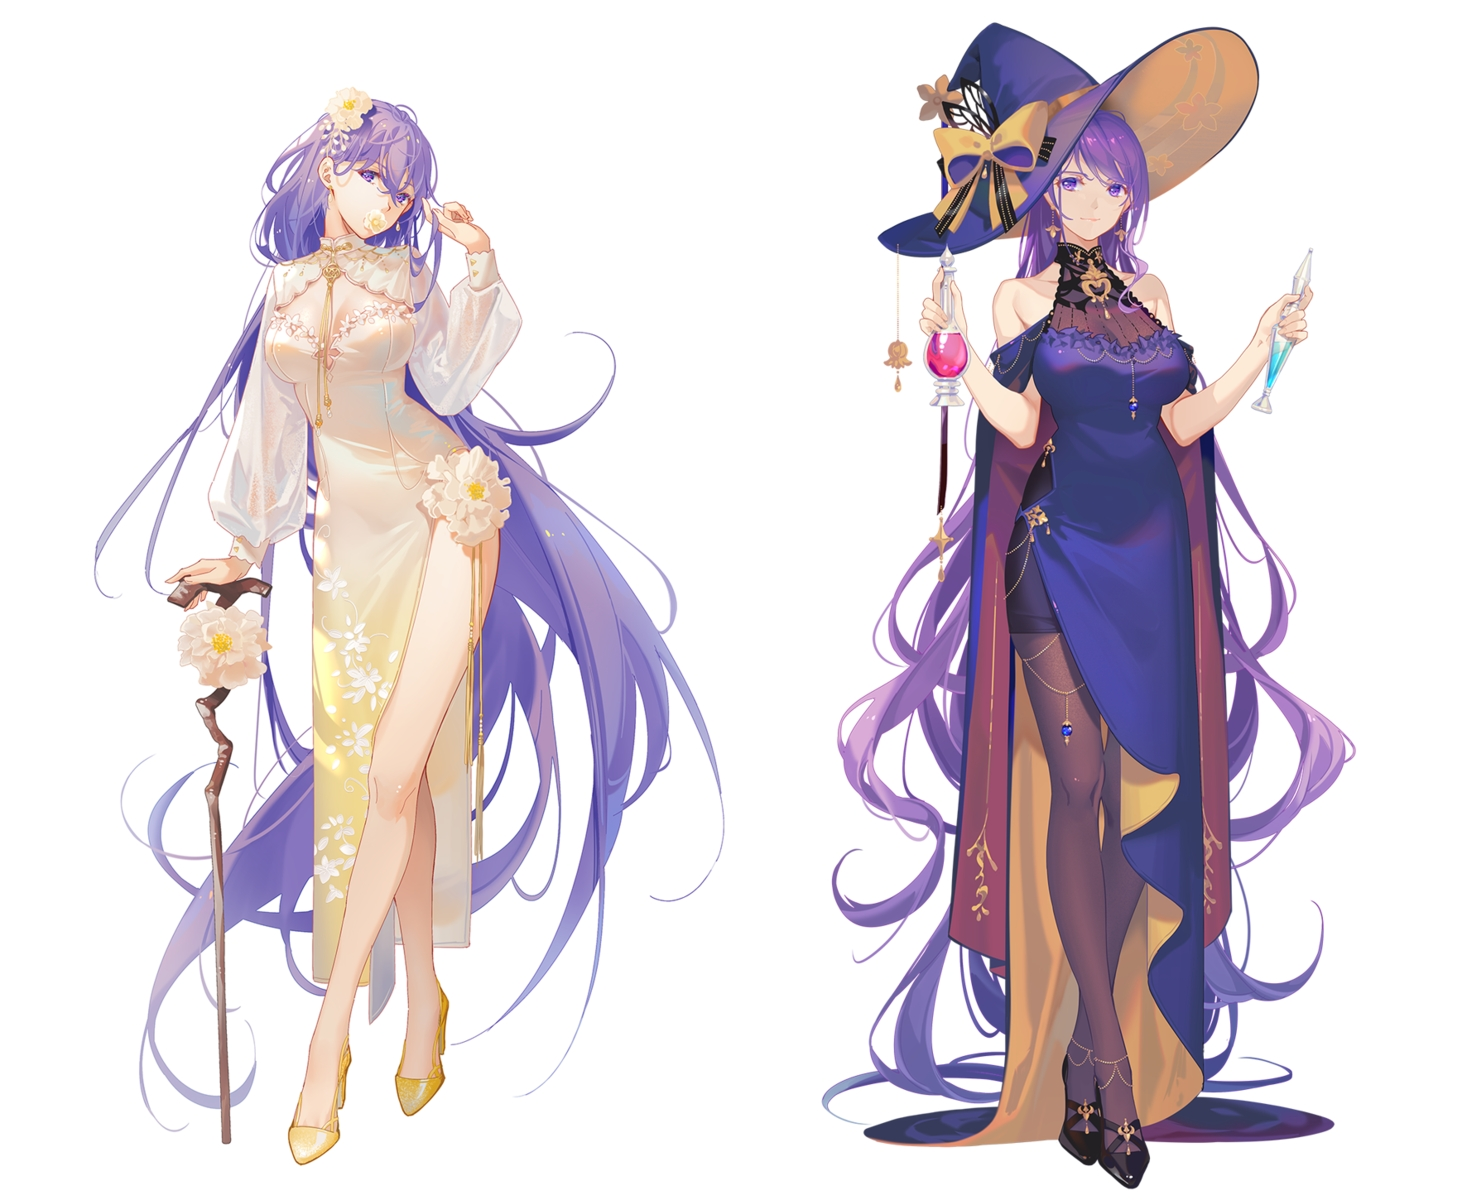 bow breasts cape chinese_clothes chinese_dress cleavage cosplay dress flowers hat long_hair mo_qingxian pantyhose purple_eyes purple_hair see_through staff tidsean vocaloid vsinger witch witch_hat